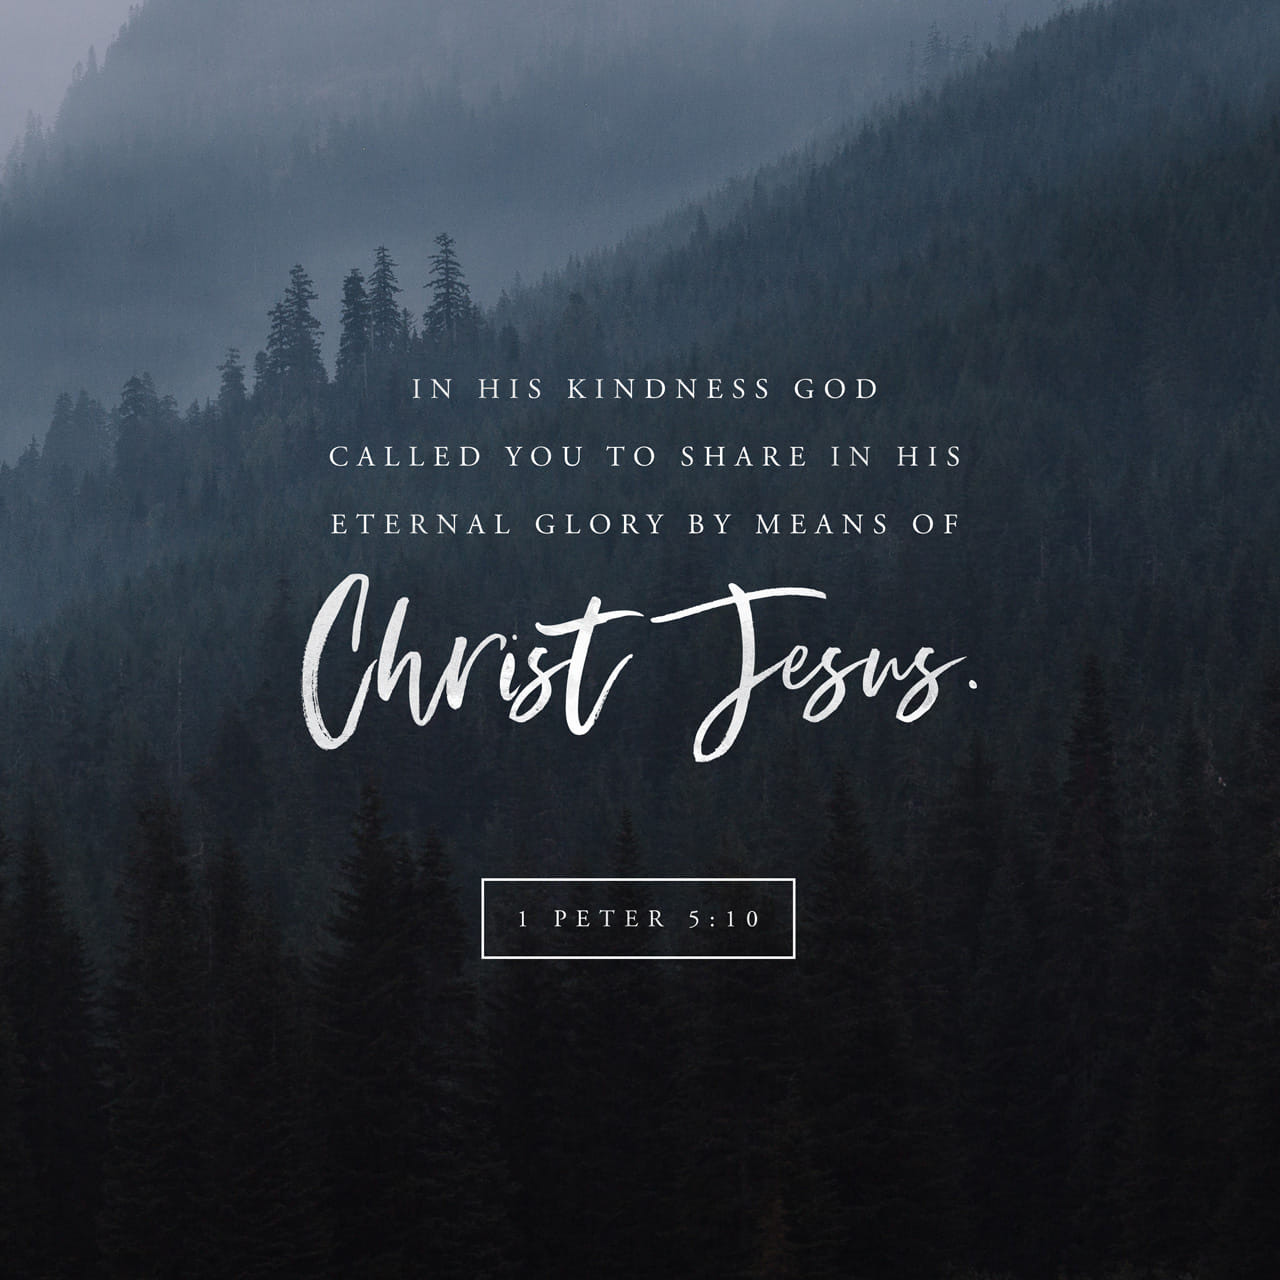 1 Peter 5:10 But the God of all grace, who hath called us unto his eternal glory by Christ Jesus, after that ye have suffered a while, make you perfect, stablish, strengthen, settle you. | King James Version (KJV)